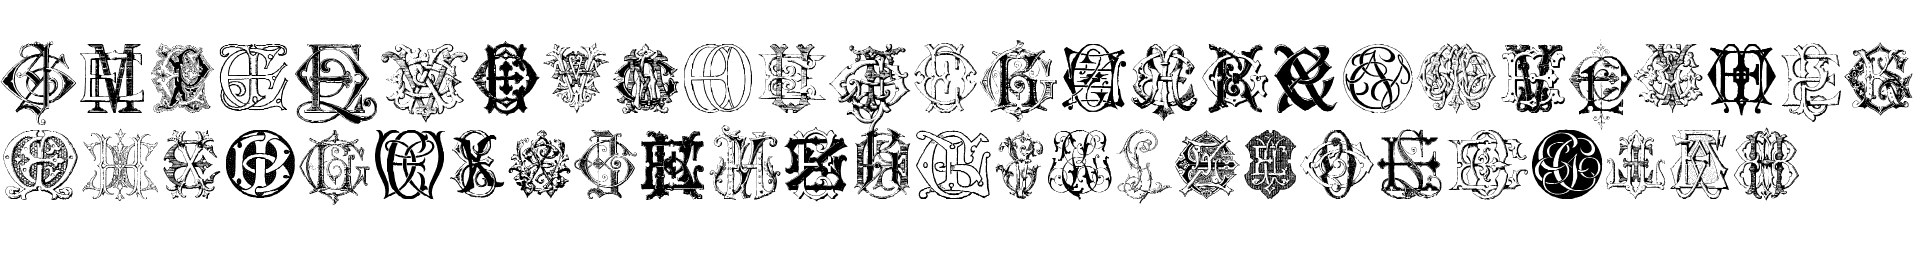 Intellecta Monograms Random Samples Six